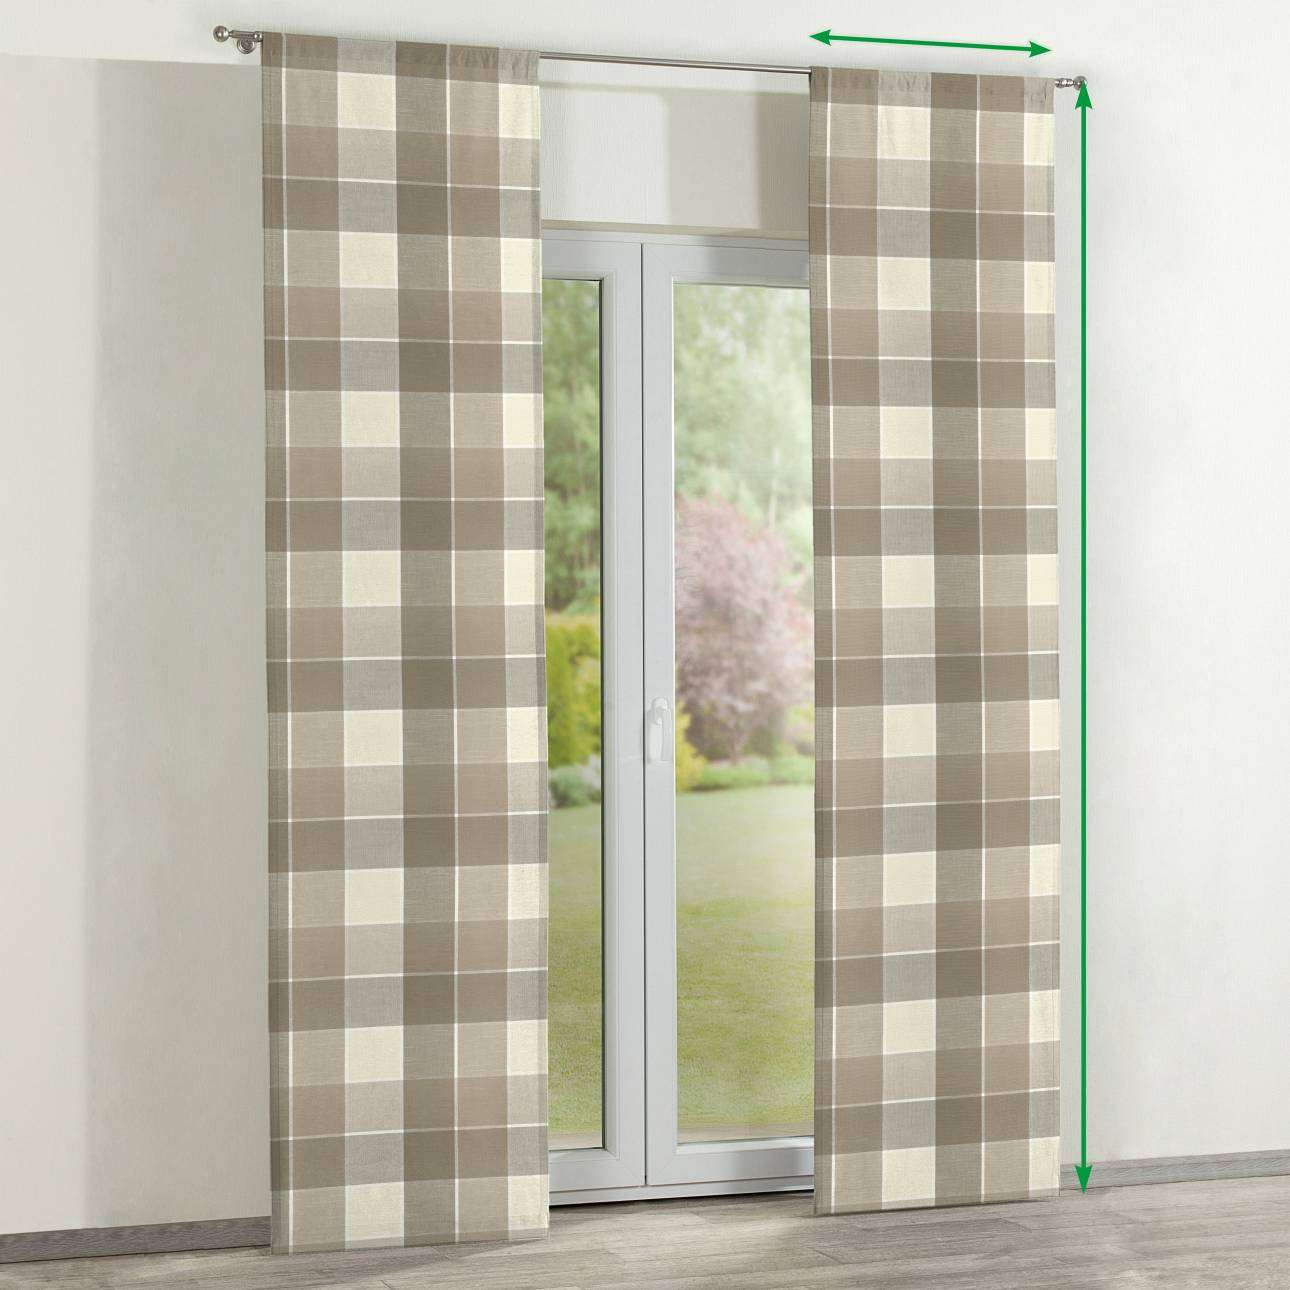 Slot panel curtains – Set of 2 in collection Cardiff, fabric: 136-28